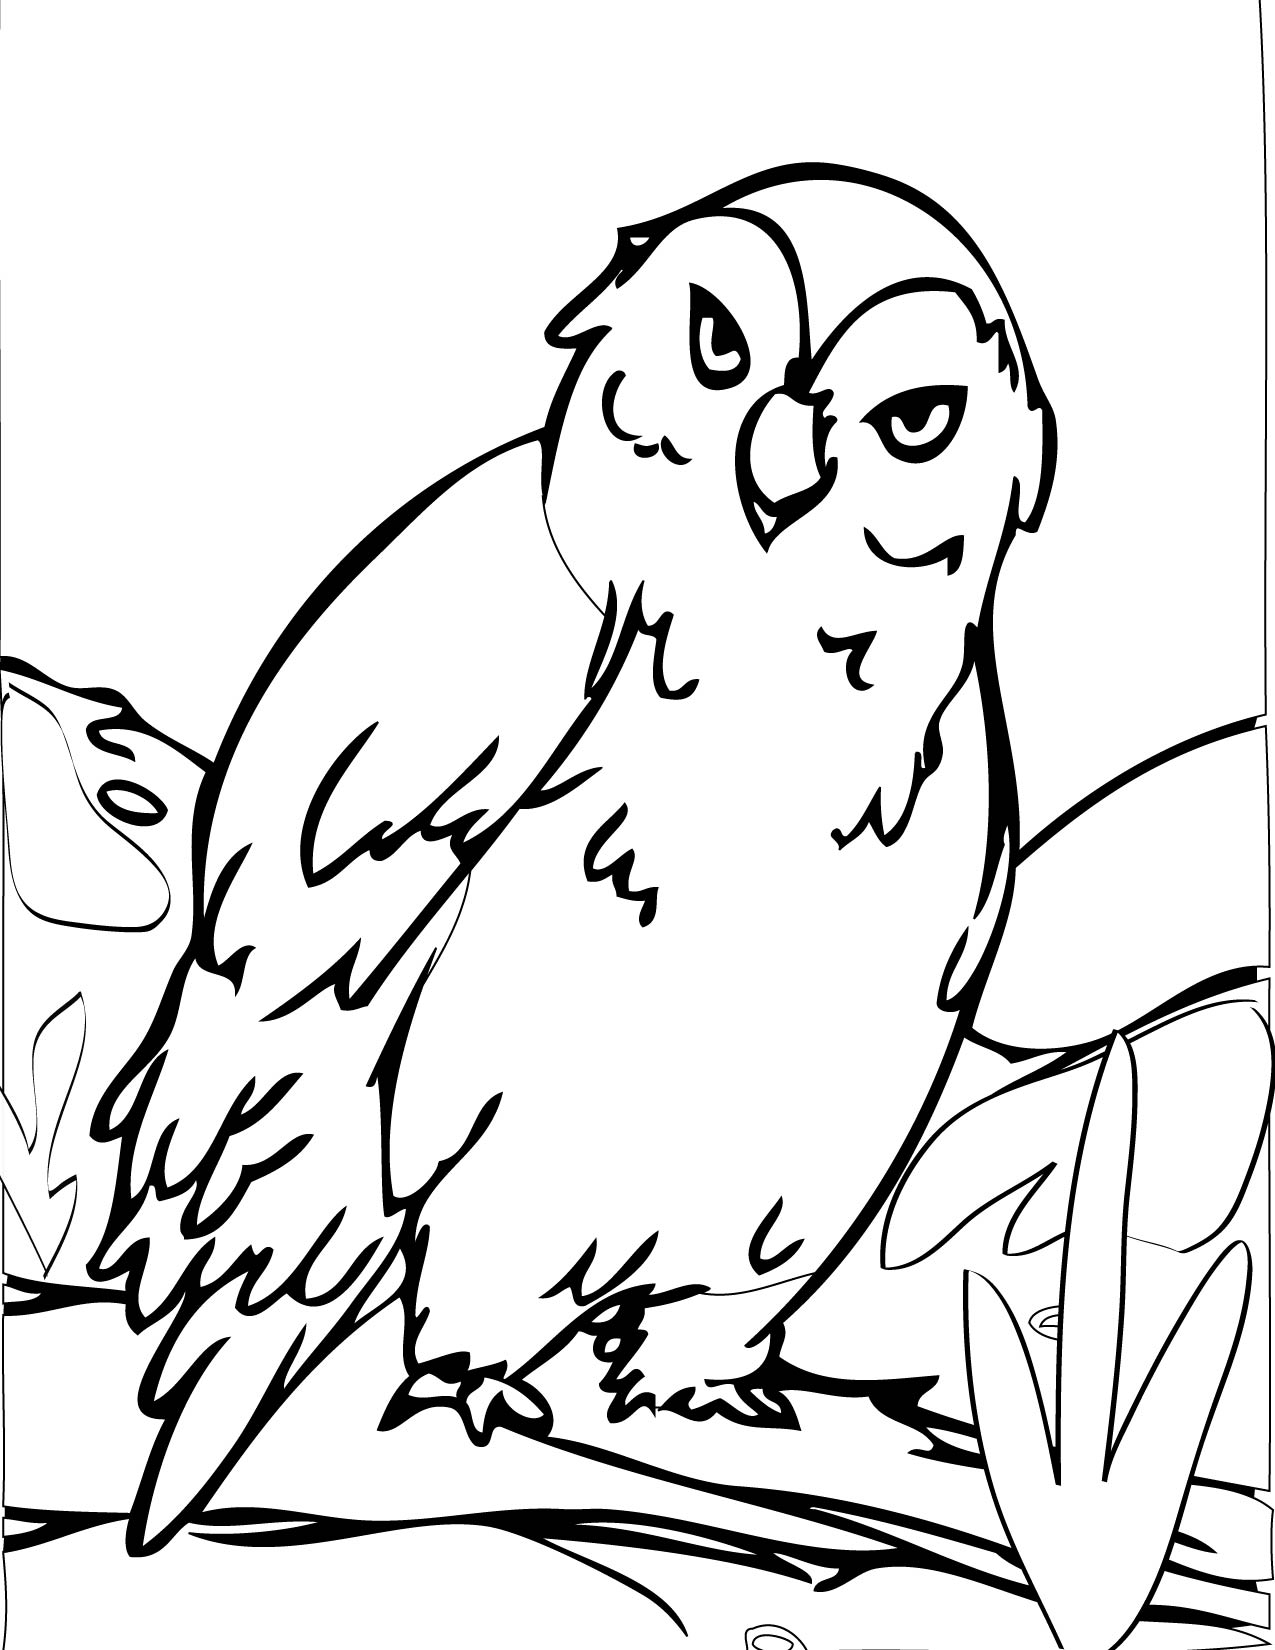 Coloring pitchers of animals - Cute Owl Coloring Pages